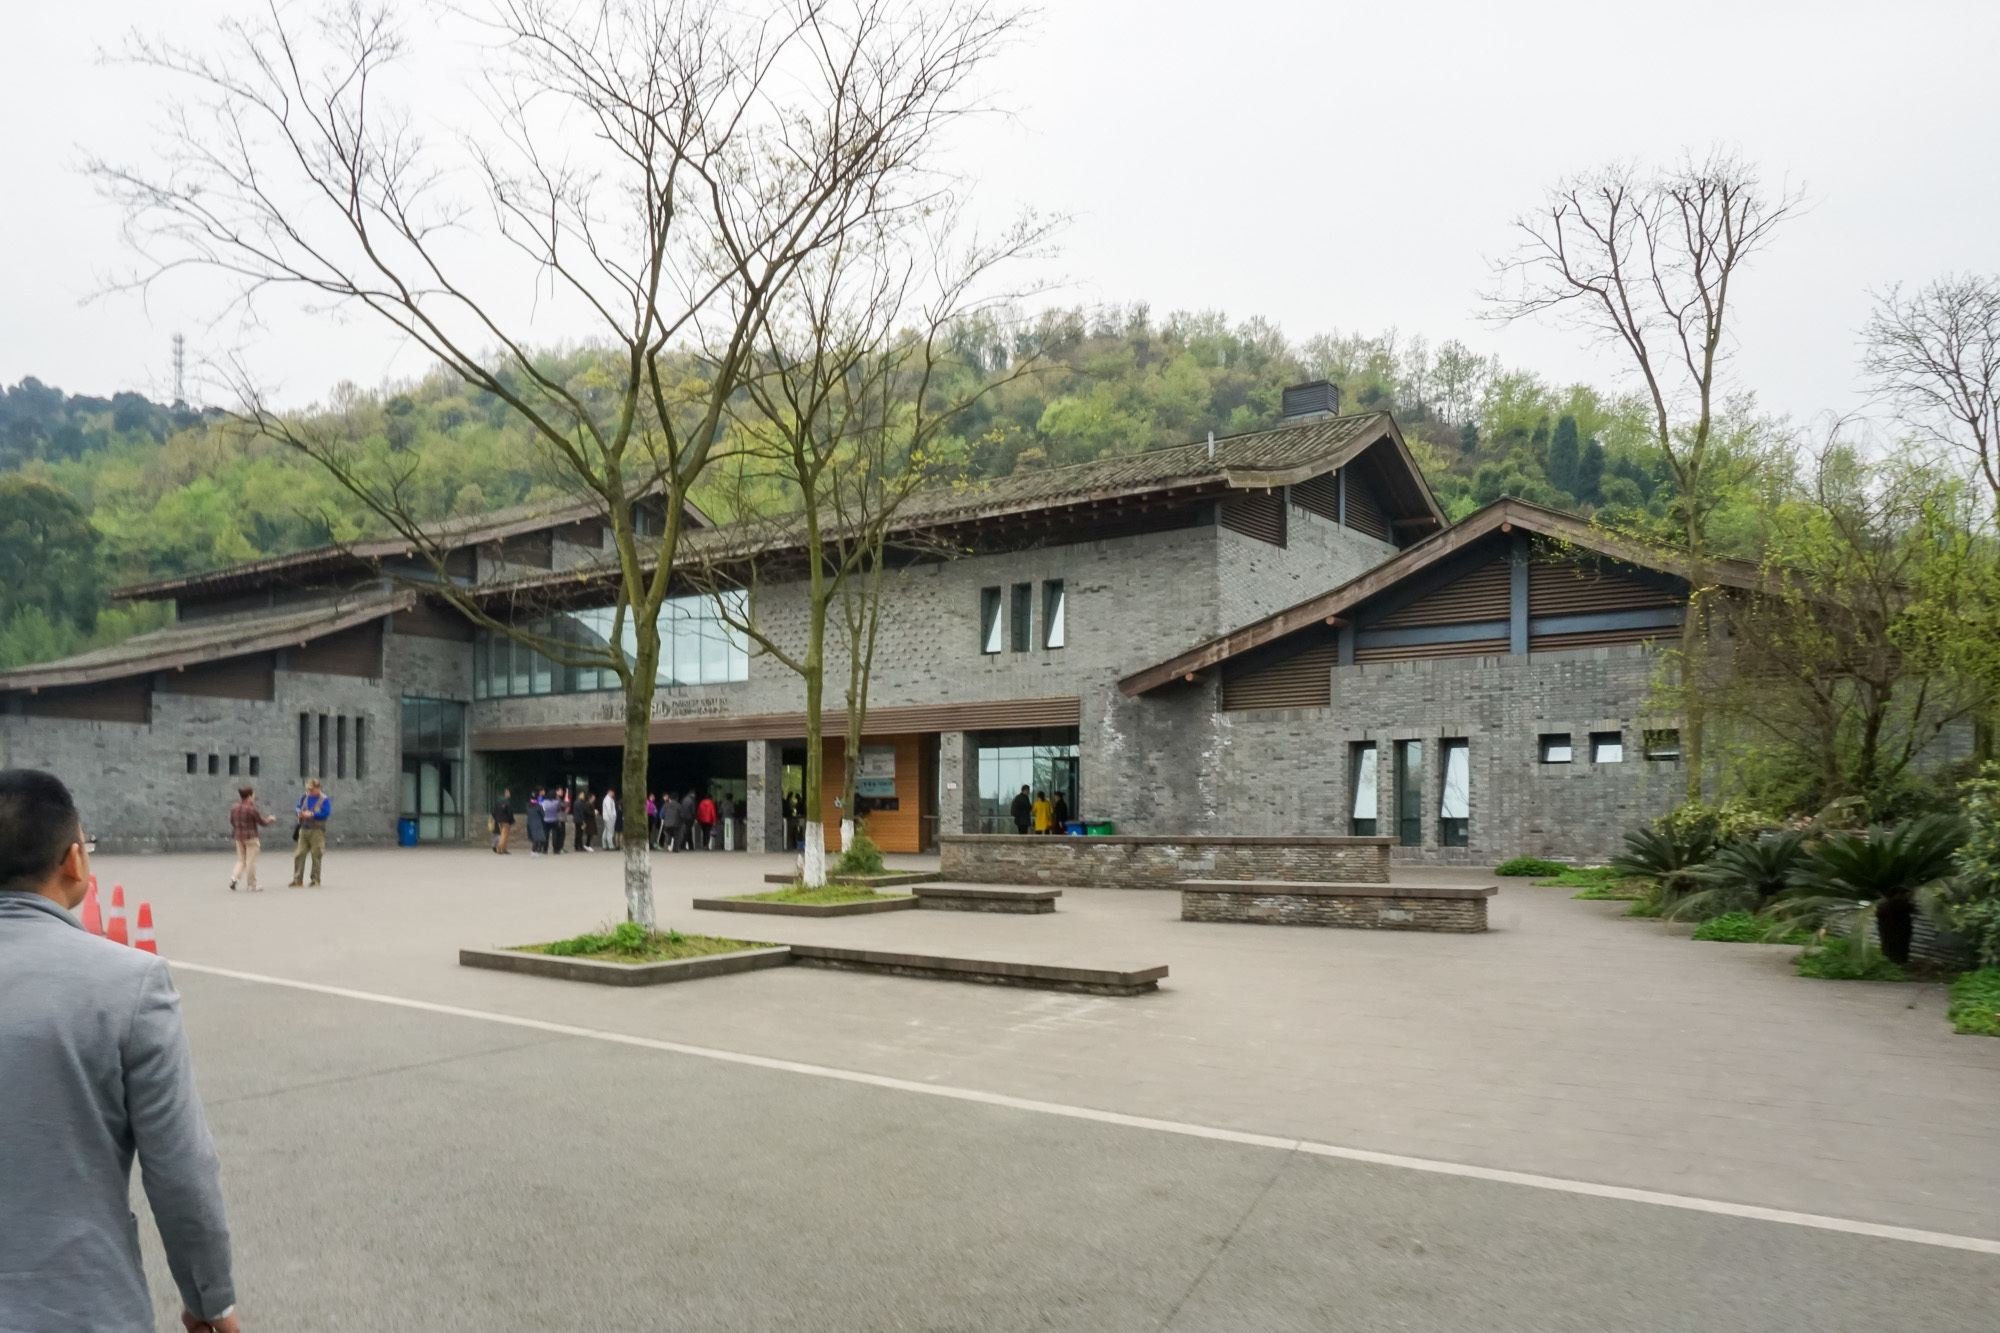 The entrance to Dujiangyan Panda Base in China